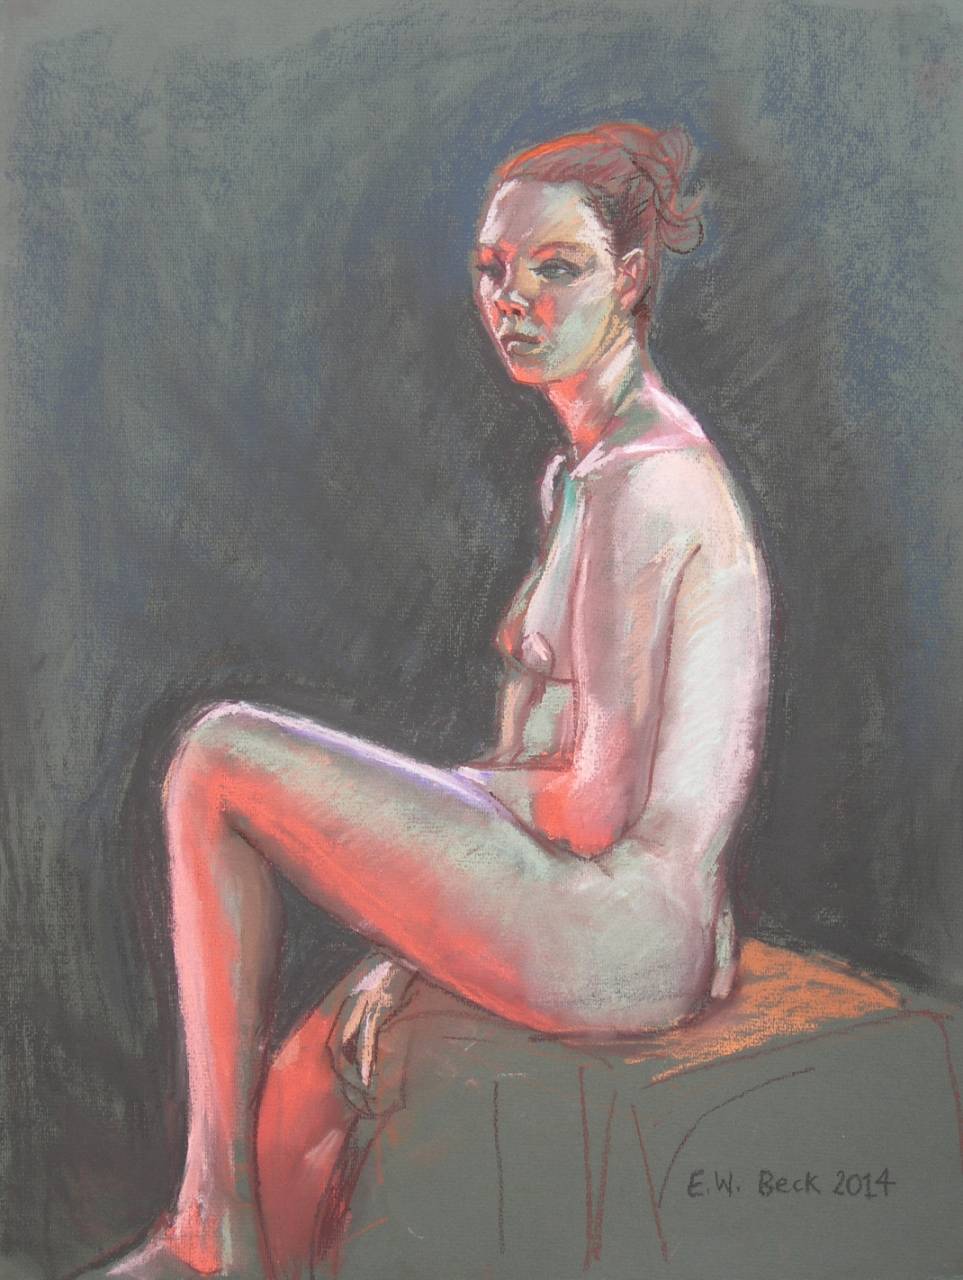 life drawing in pastels - 'Sonja' 2014